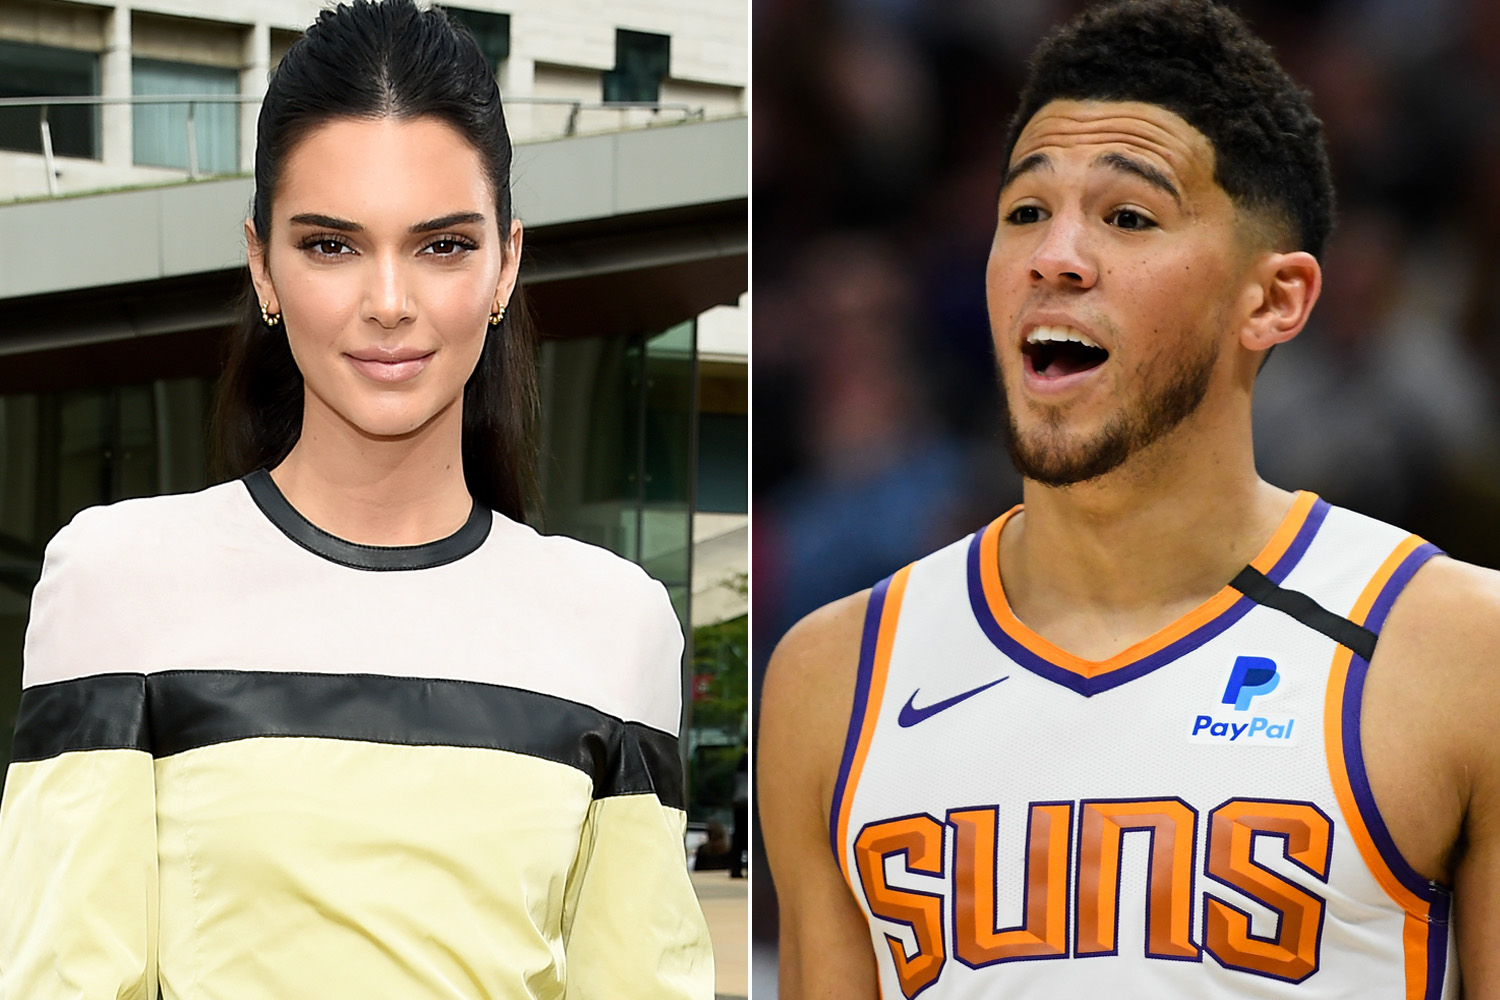 Kendall Jenner and Devin Booker get flirty with Instagram ...